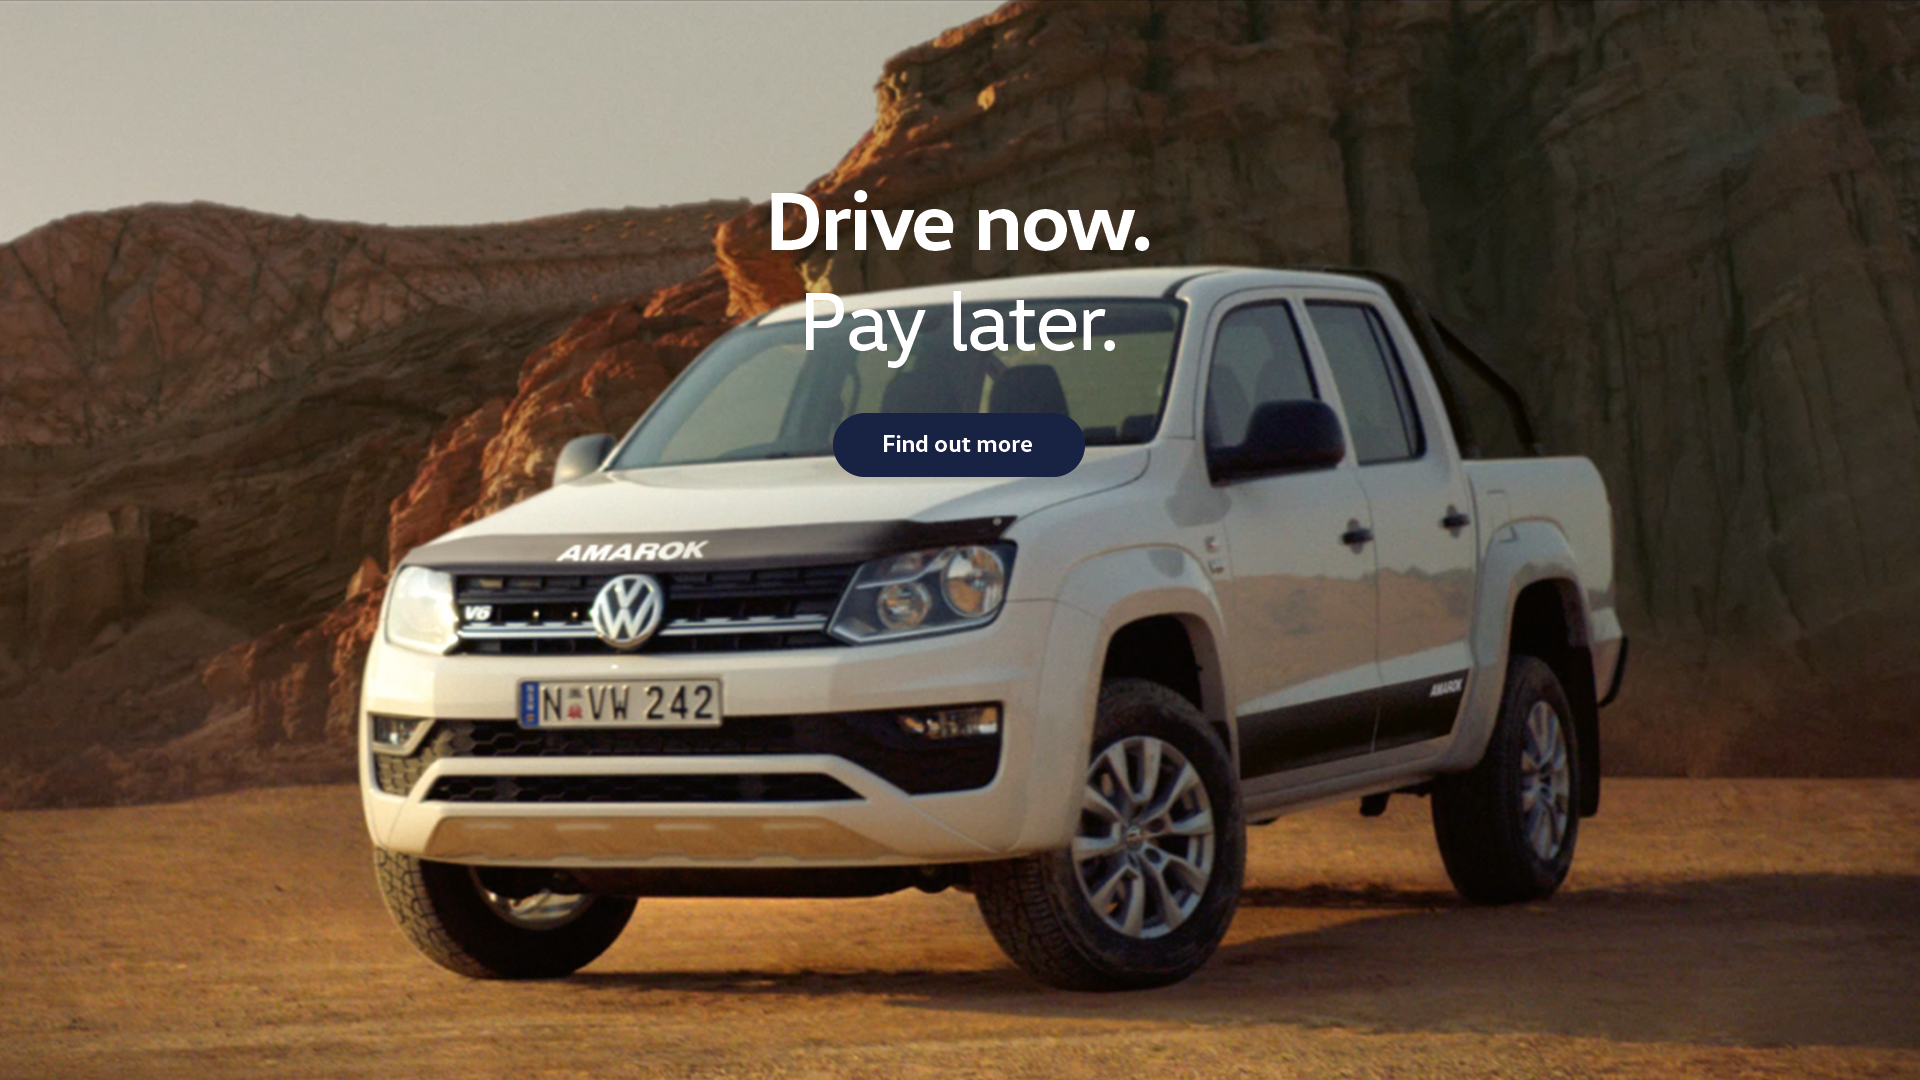 Volkswagen Amarok. Drive now. Pay later. Test drive today at Woodleys Volkswagen.